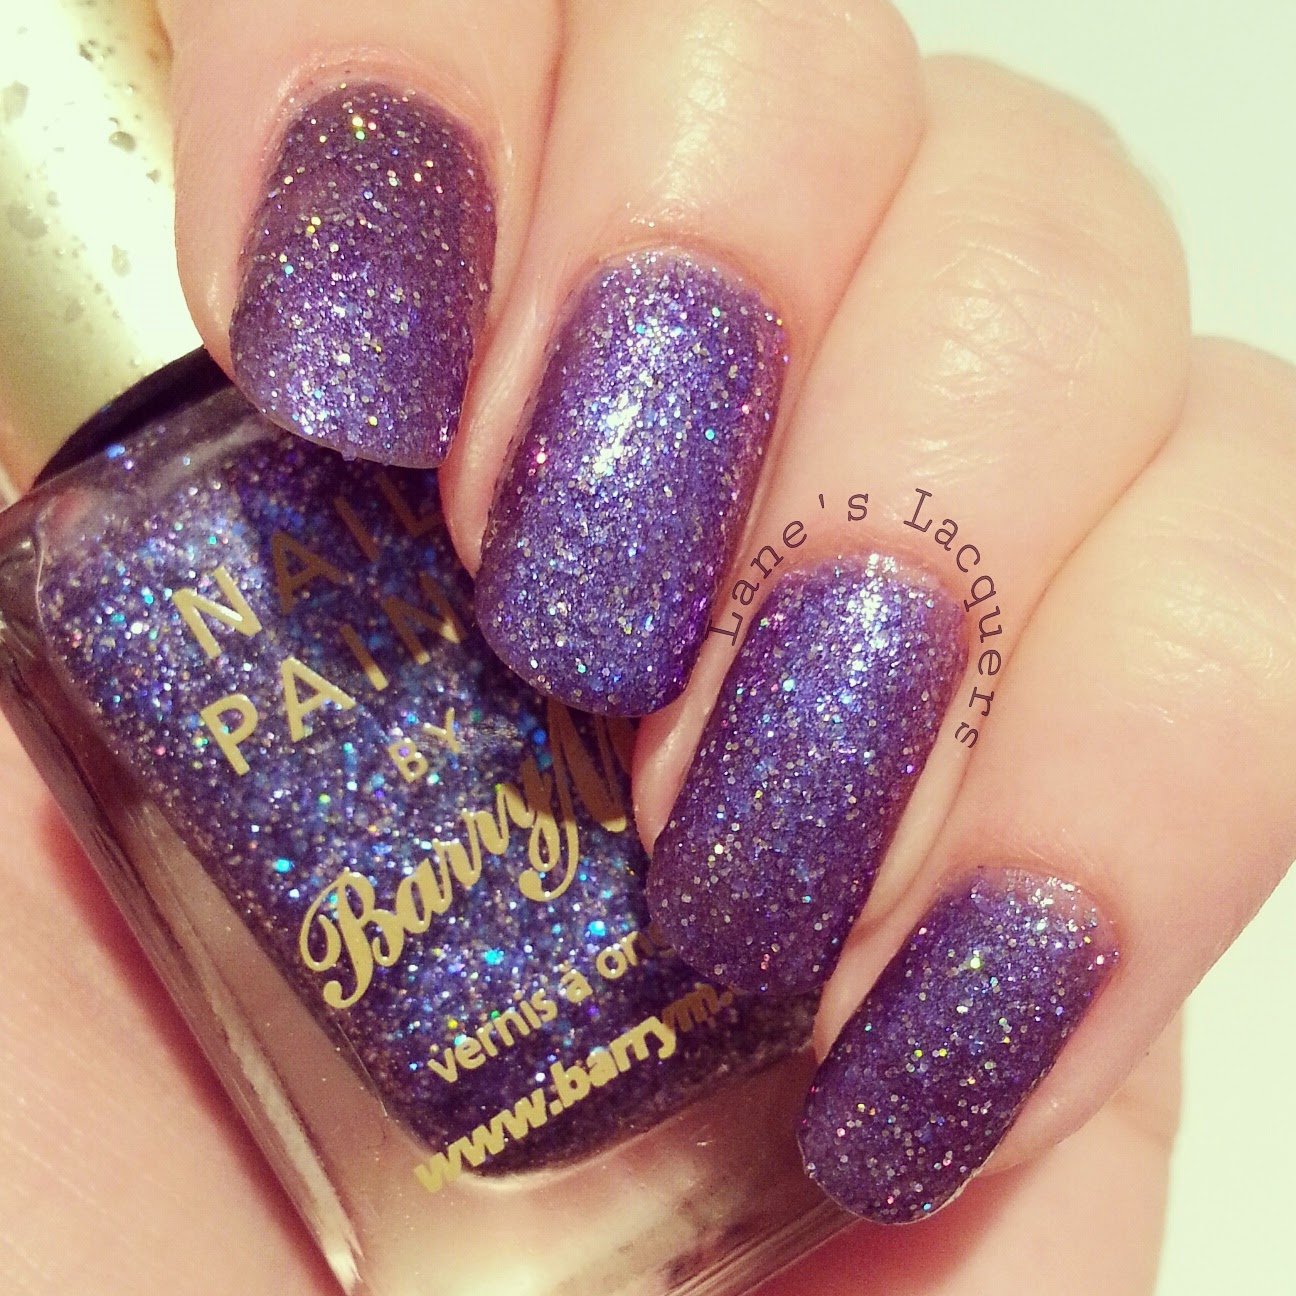 new-barry-m-glitterati-fashion-icon-swatch-manicure (2)